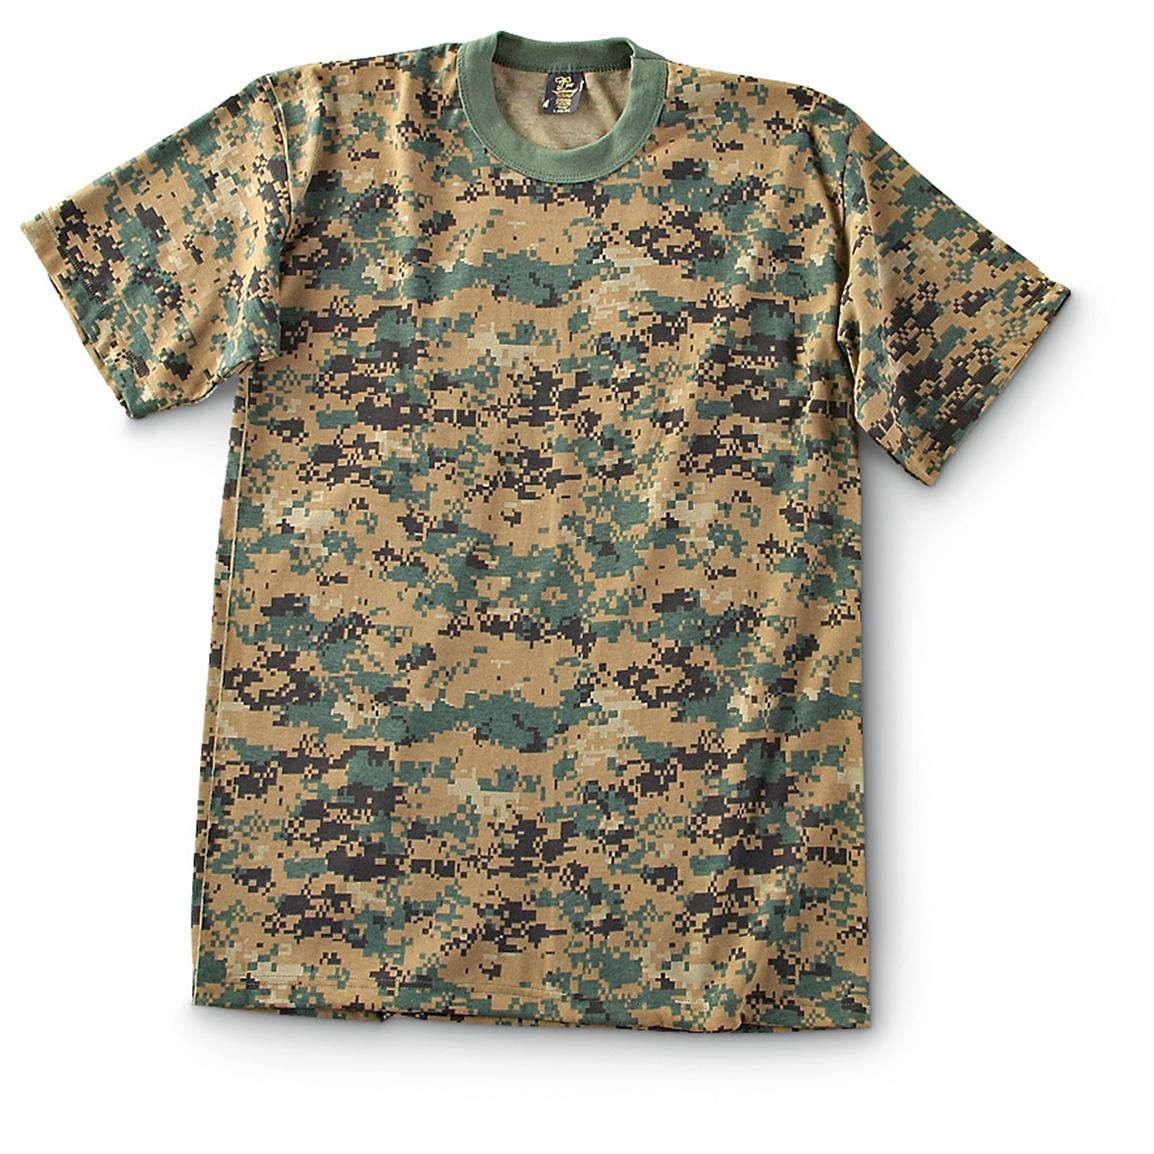 Military-Style Short-Sleeve T-Shirts, 2 Pack, New, Digital Woodland